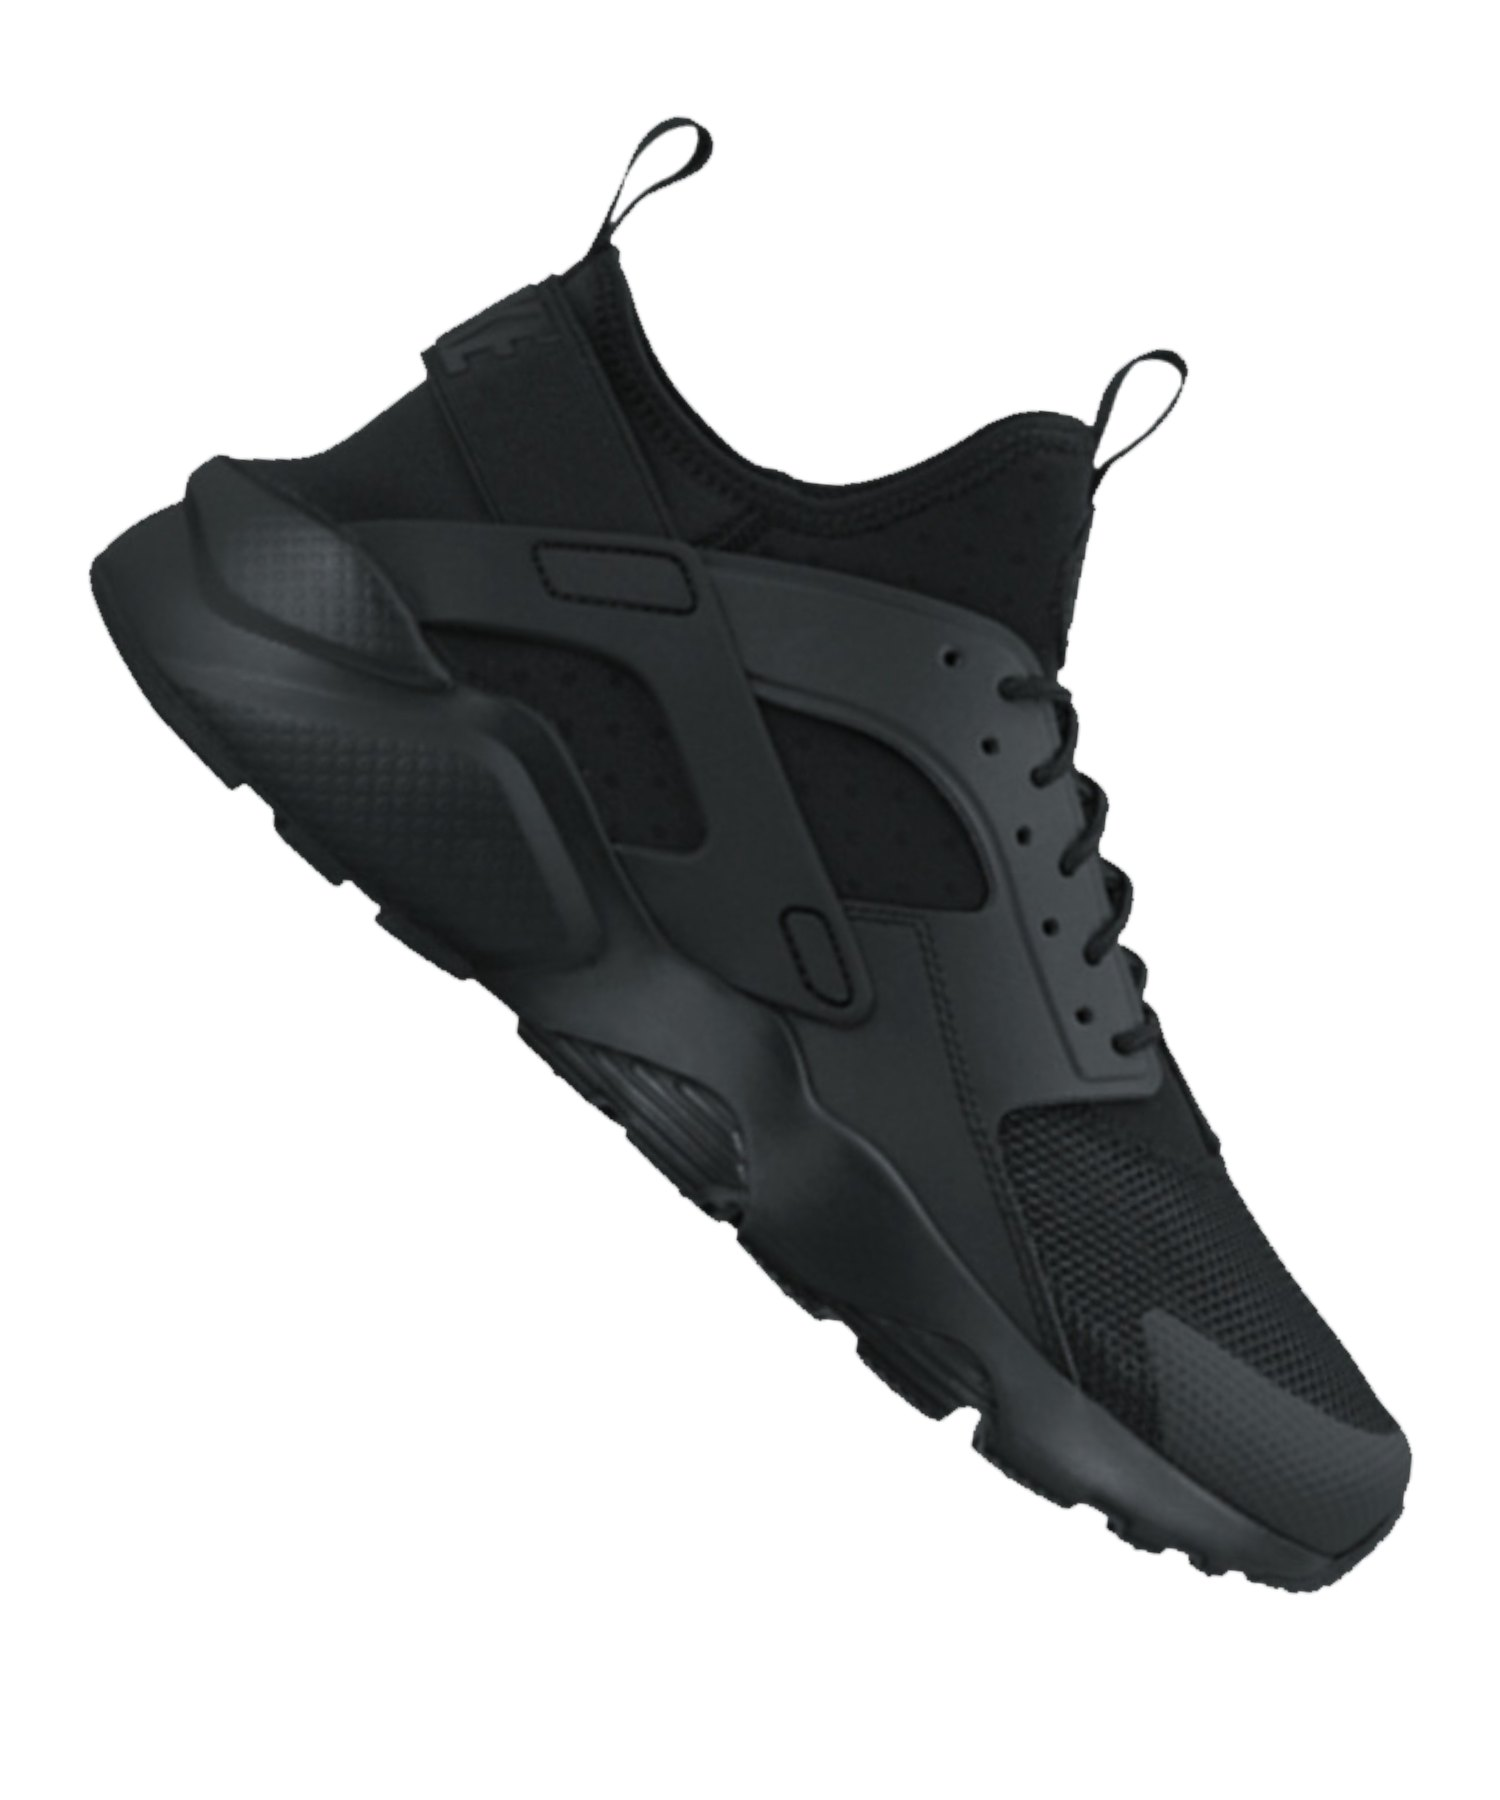 nike air huarache run ultra sneaker schwarz f002. Black Bedroom Furniture Sets. Home Design Ideas